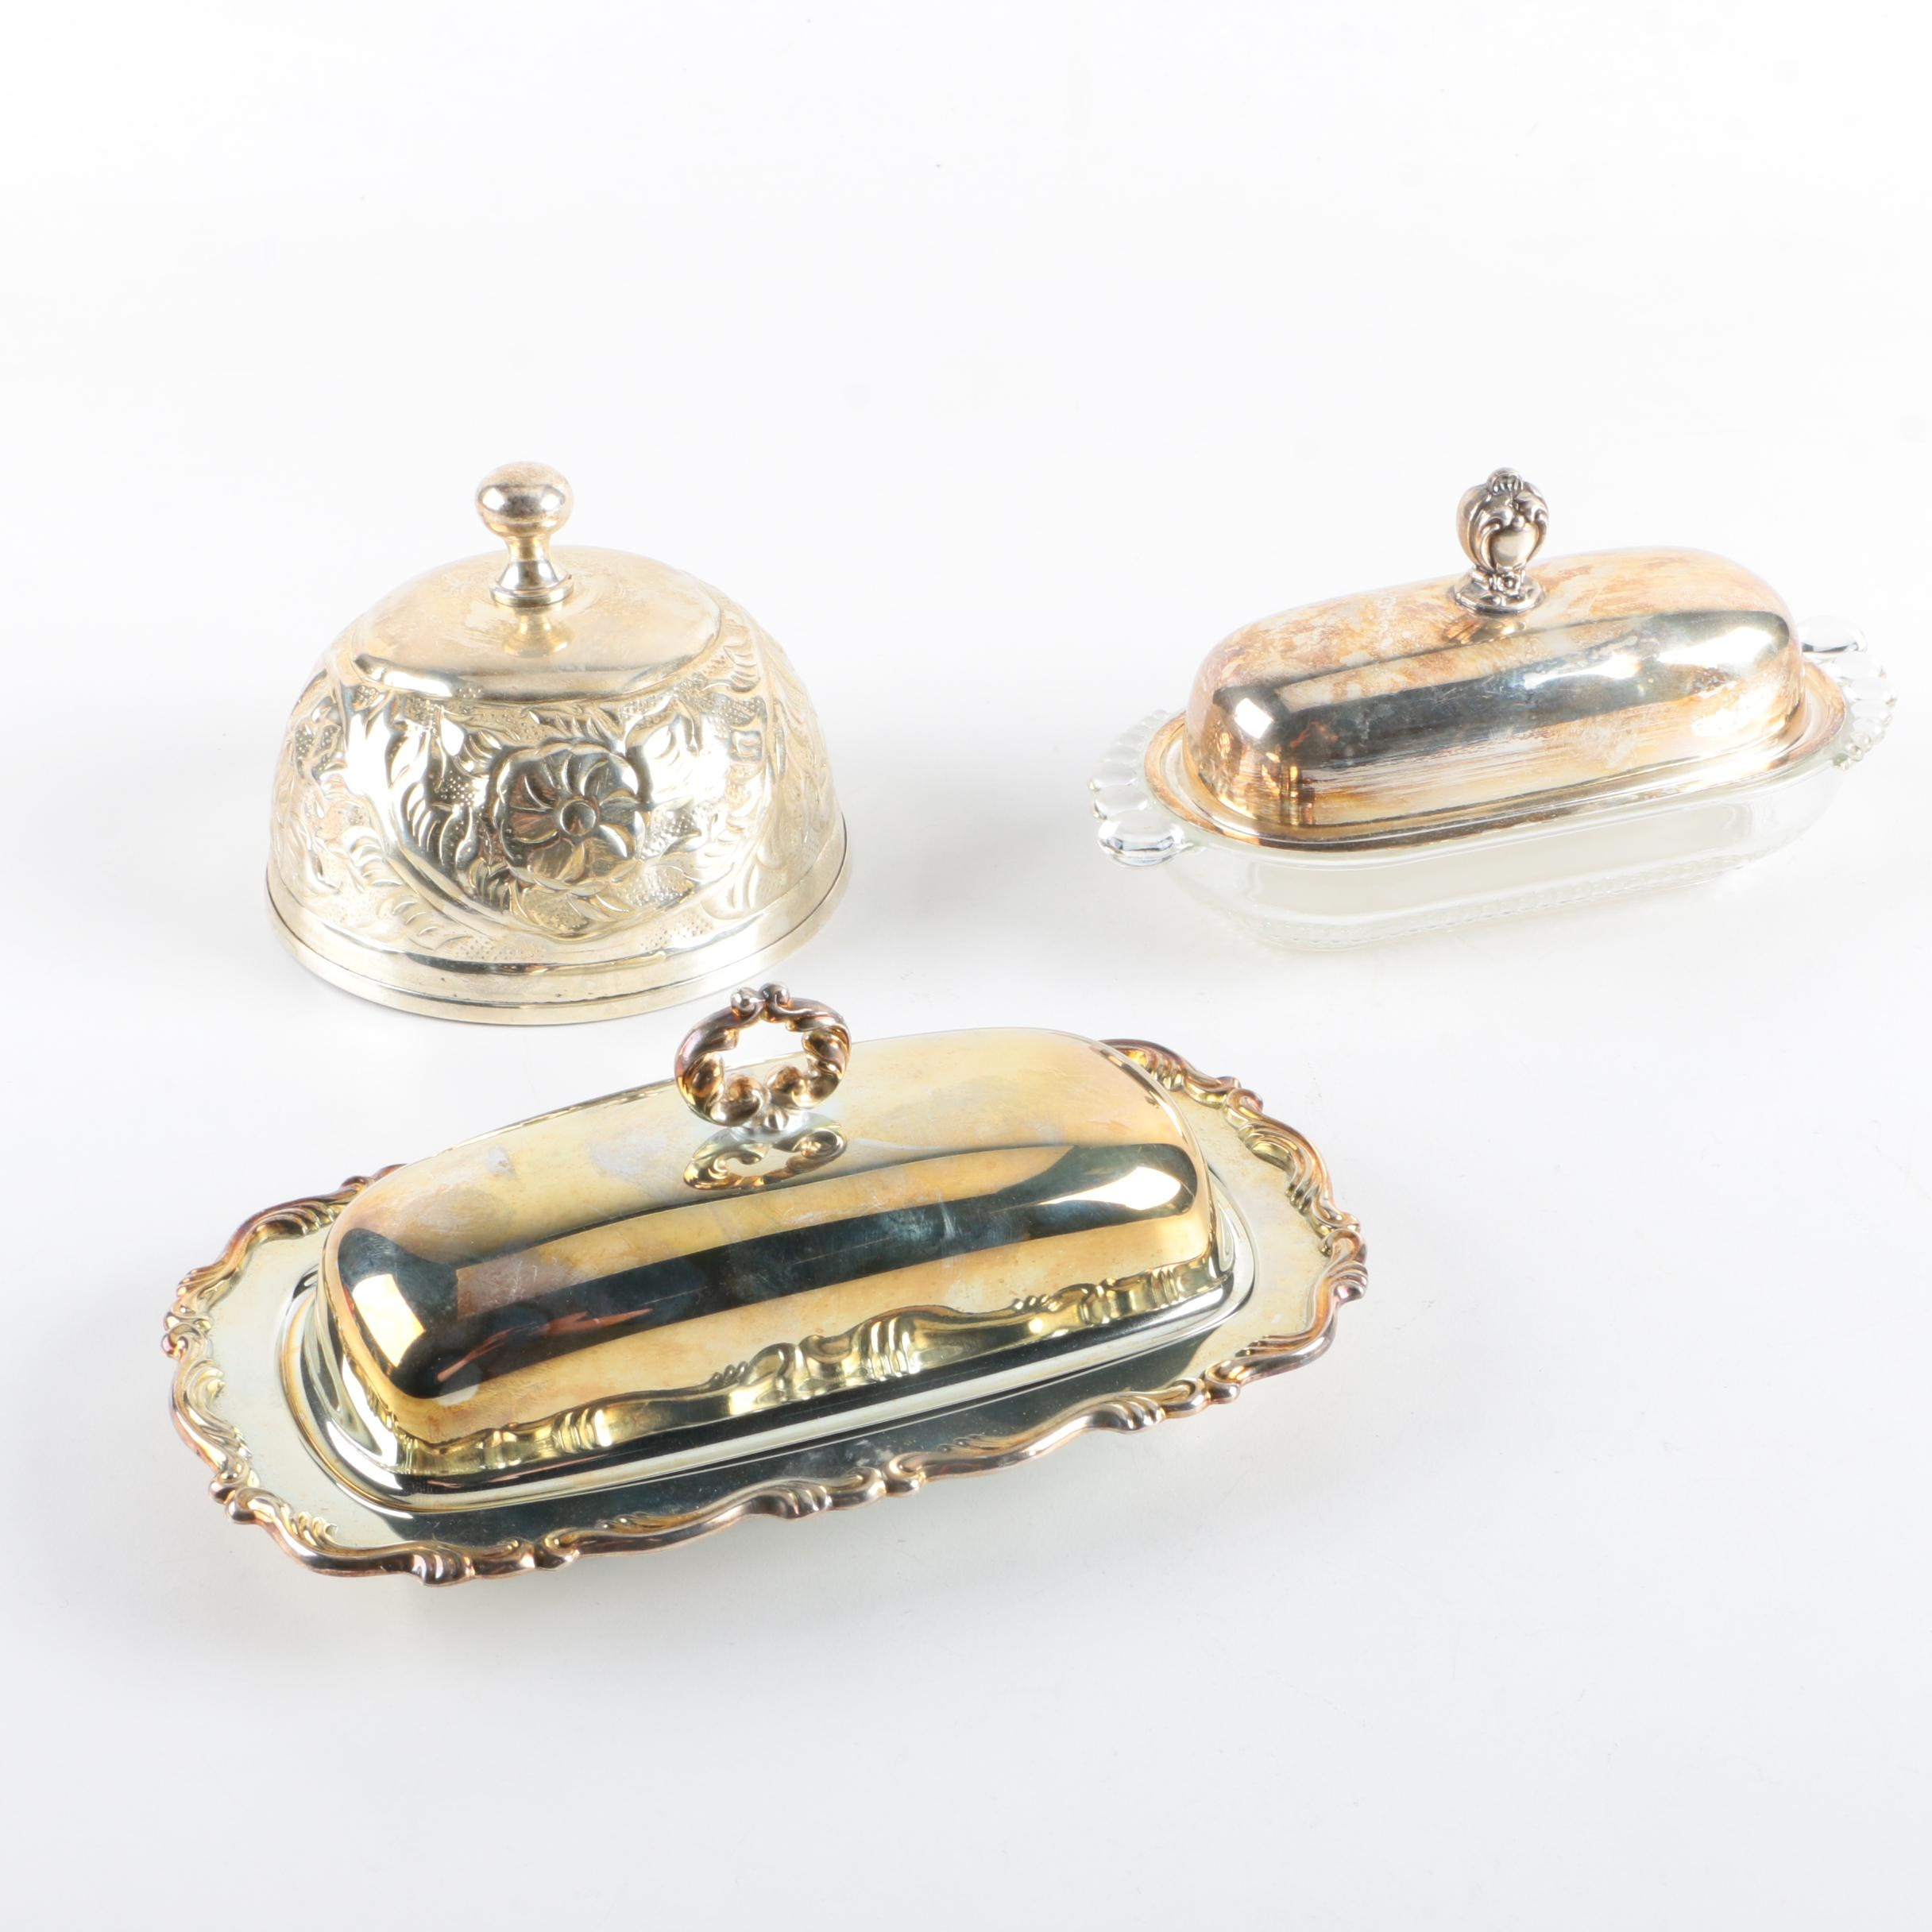 Wm. Rogers & Son and Other Silver Plate Butter Dish